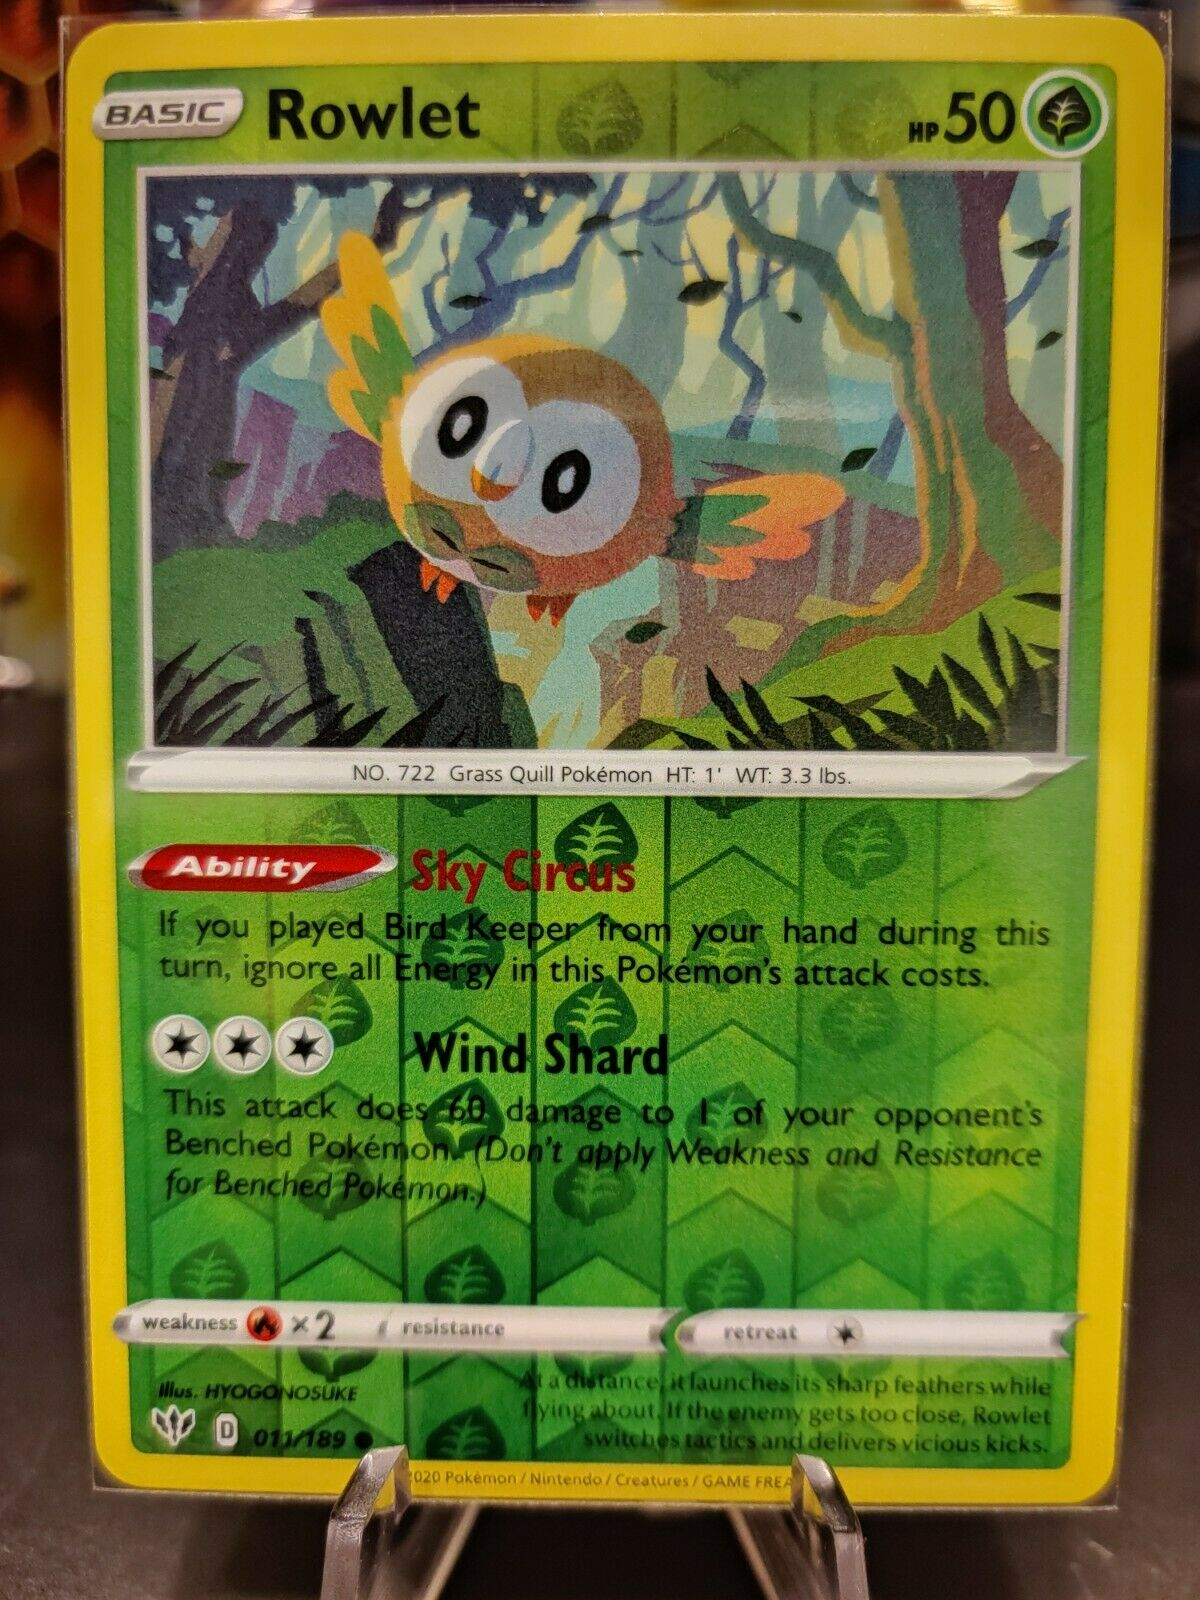 4x Pokemon PTCGO Rowlet 011//189 Online Card Playset Sky Circus Sent Fast In-Game